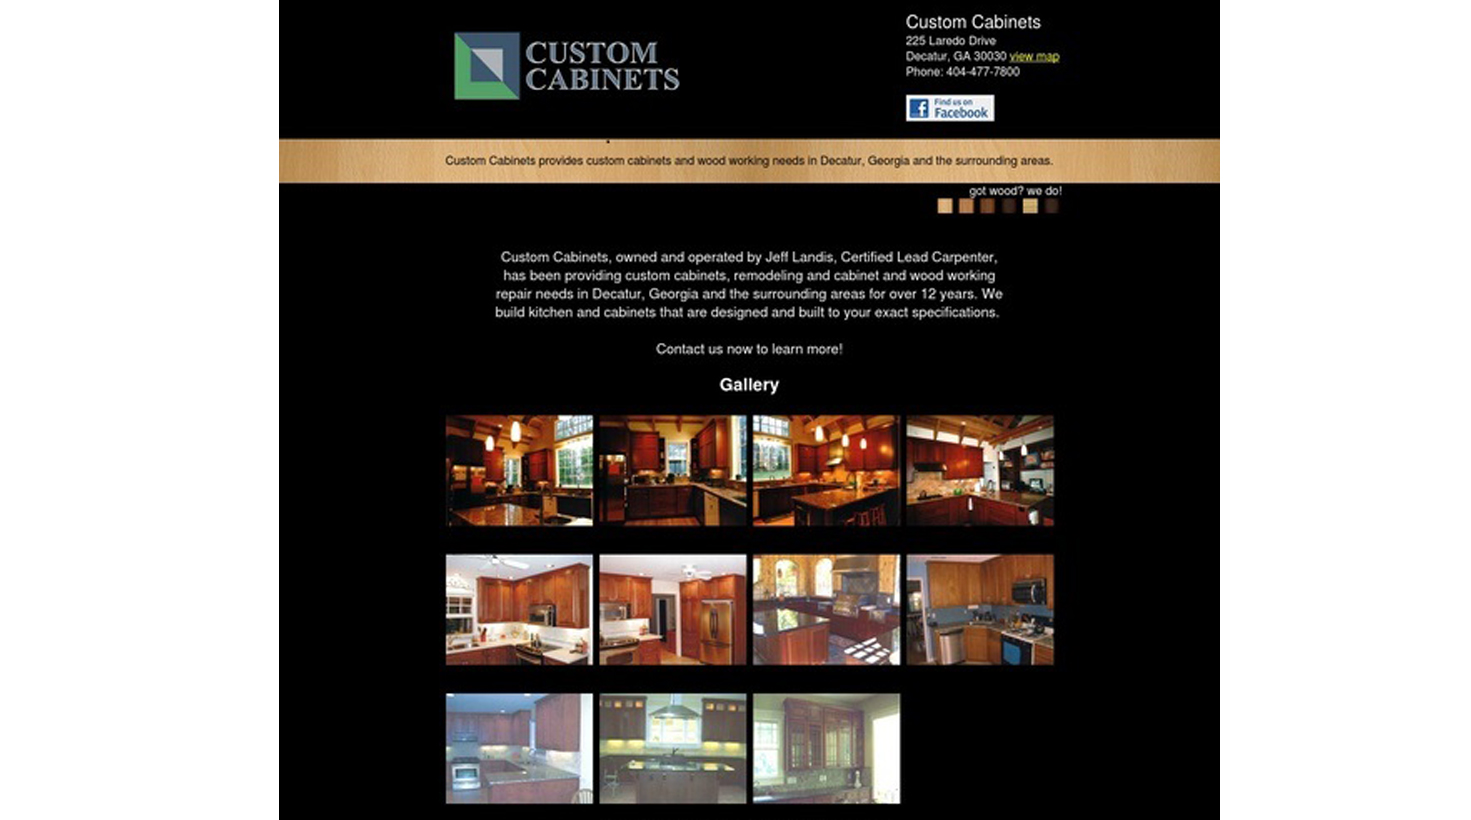 This is a promotional, informational website for a local Decatur small business, Custom Cabinets in Avondale Estates. The site features a project photo gallery that is easy to update and provides contact information.